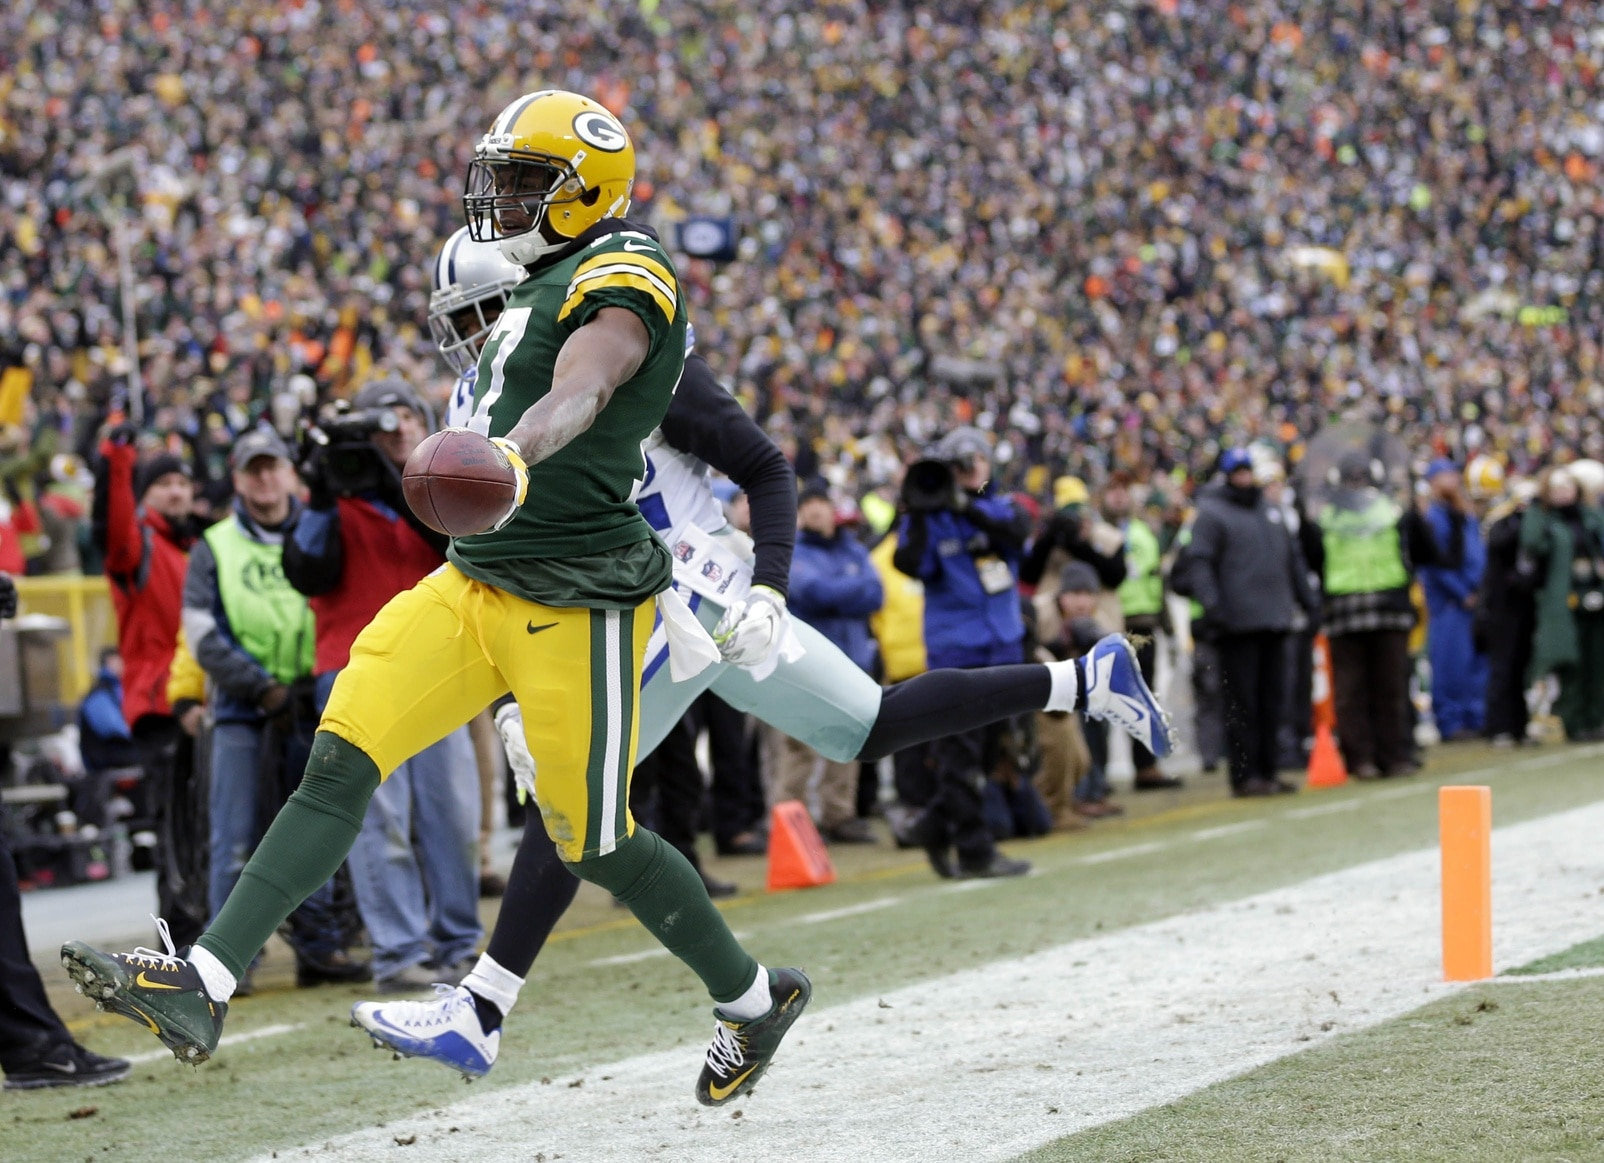 Courtesy of USA Today: Adams is the breakout start of the playoffs for Green Bay.